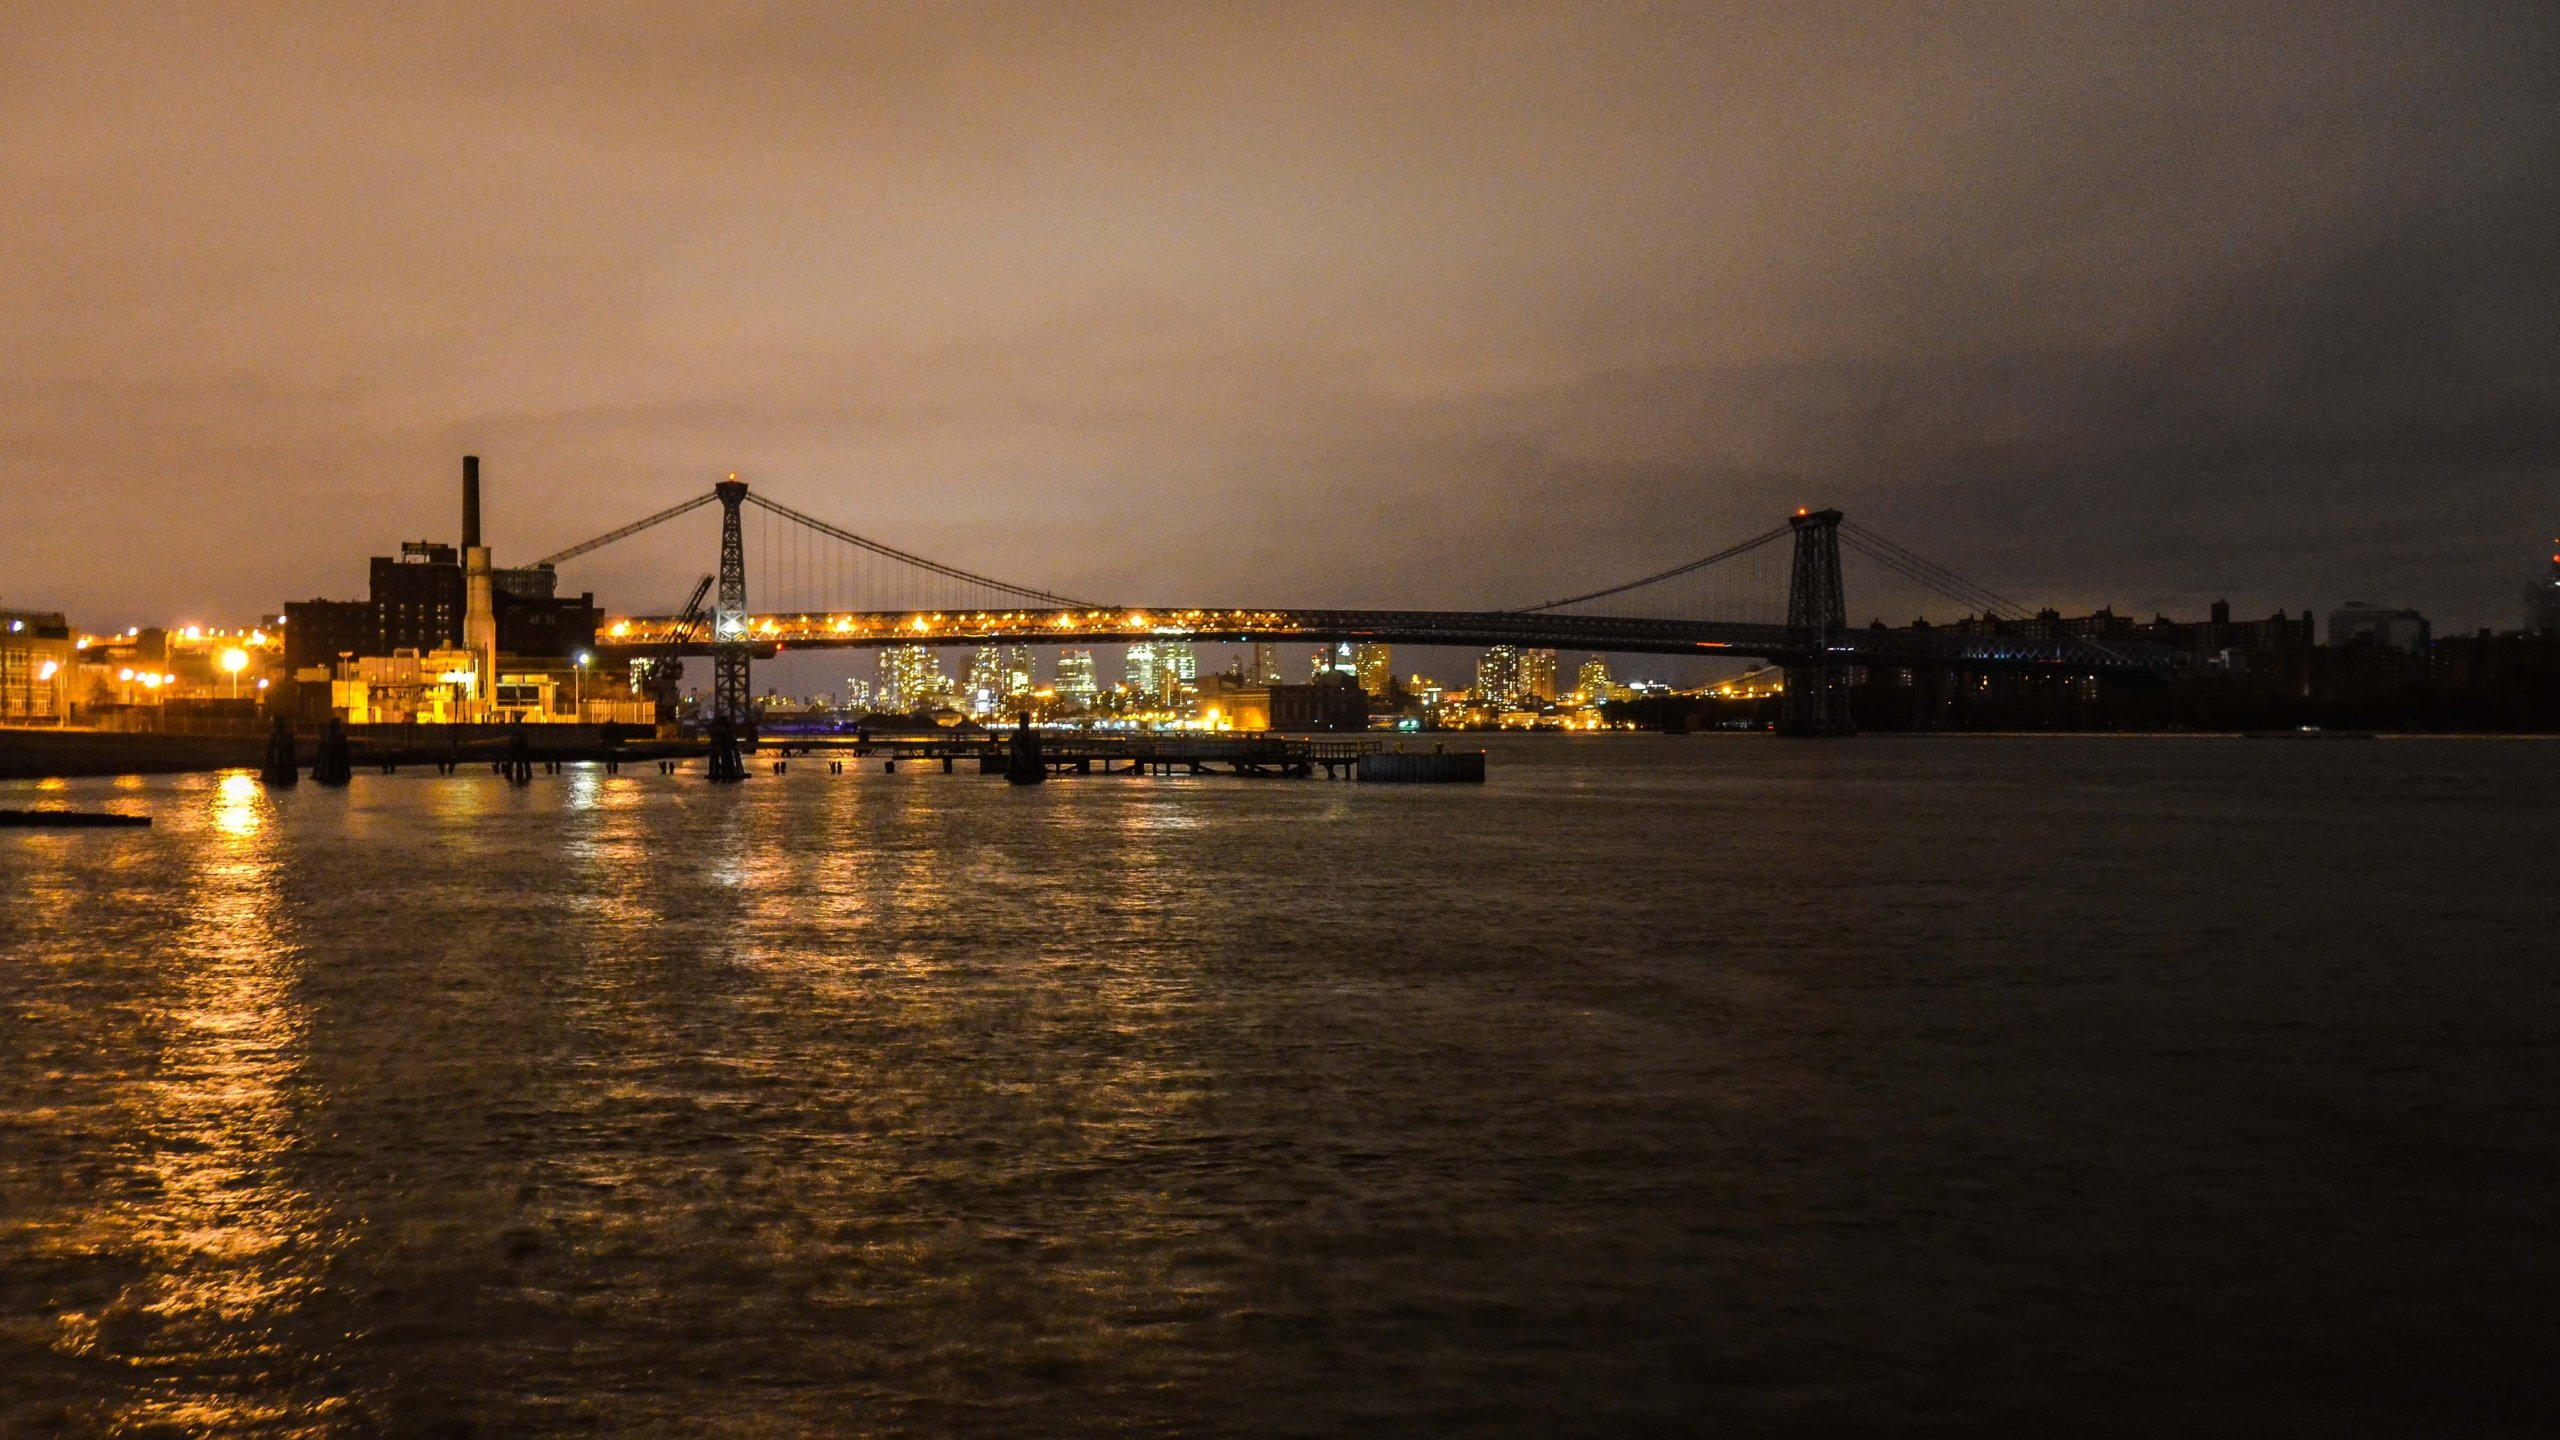 As of Oct. 30, 2012, half of the Williamsburg Bridge in Brooklyn was lit, half of it was not. Much of New York City was still without power when the New York Marathon was called off on Nov. 1, 2012. (Photo: Verge.com)